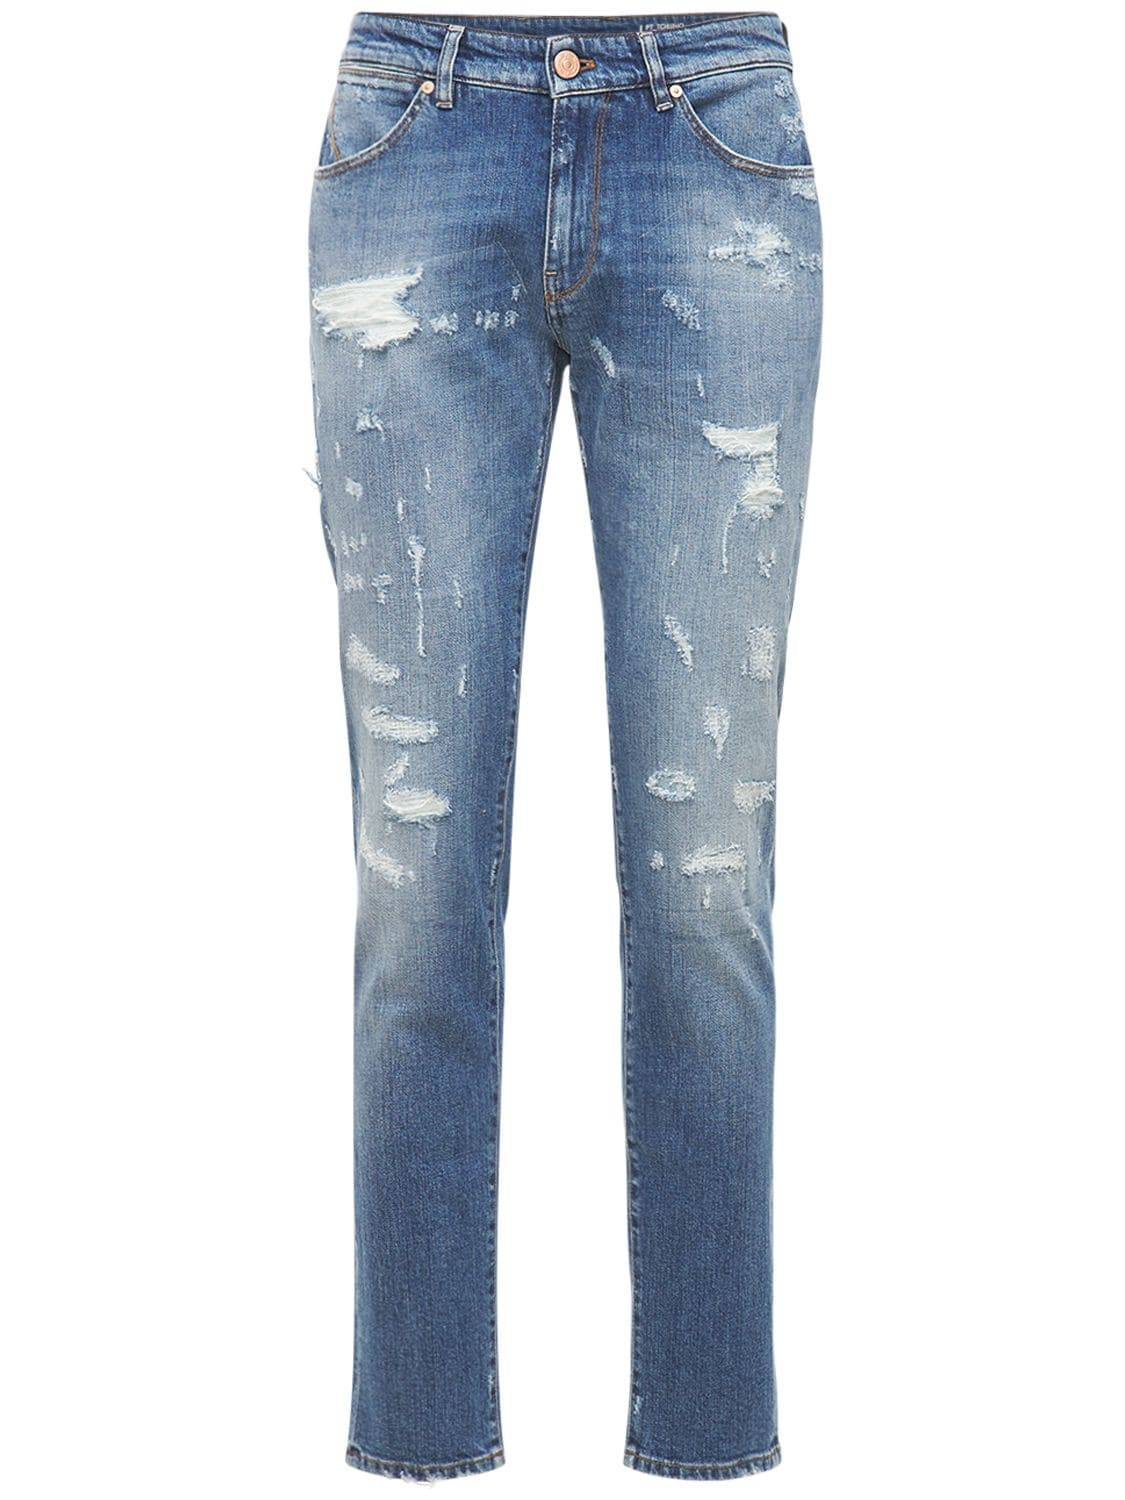 Pantaloni Torino Jeans Super Slim In Cotone Destroyed 17.5cm Blu